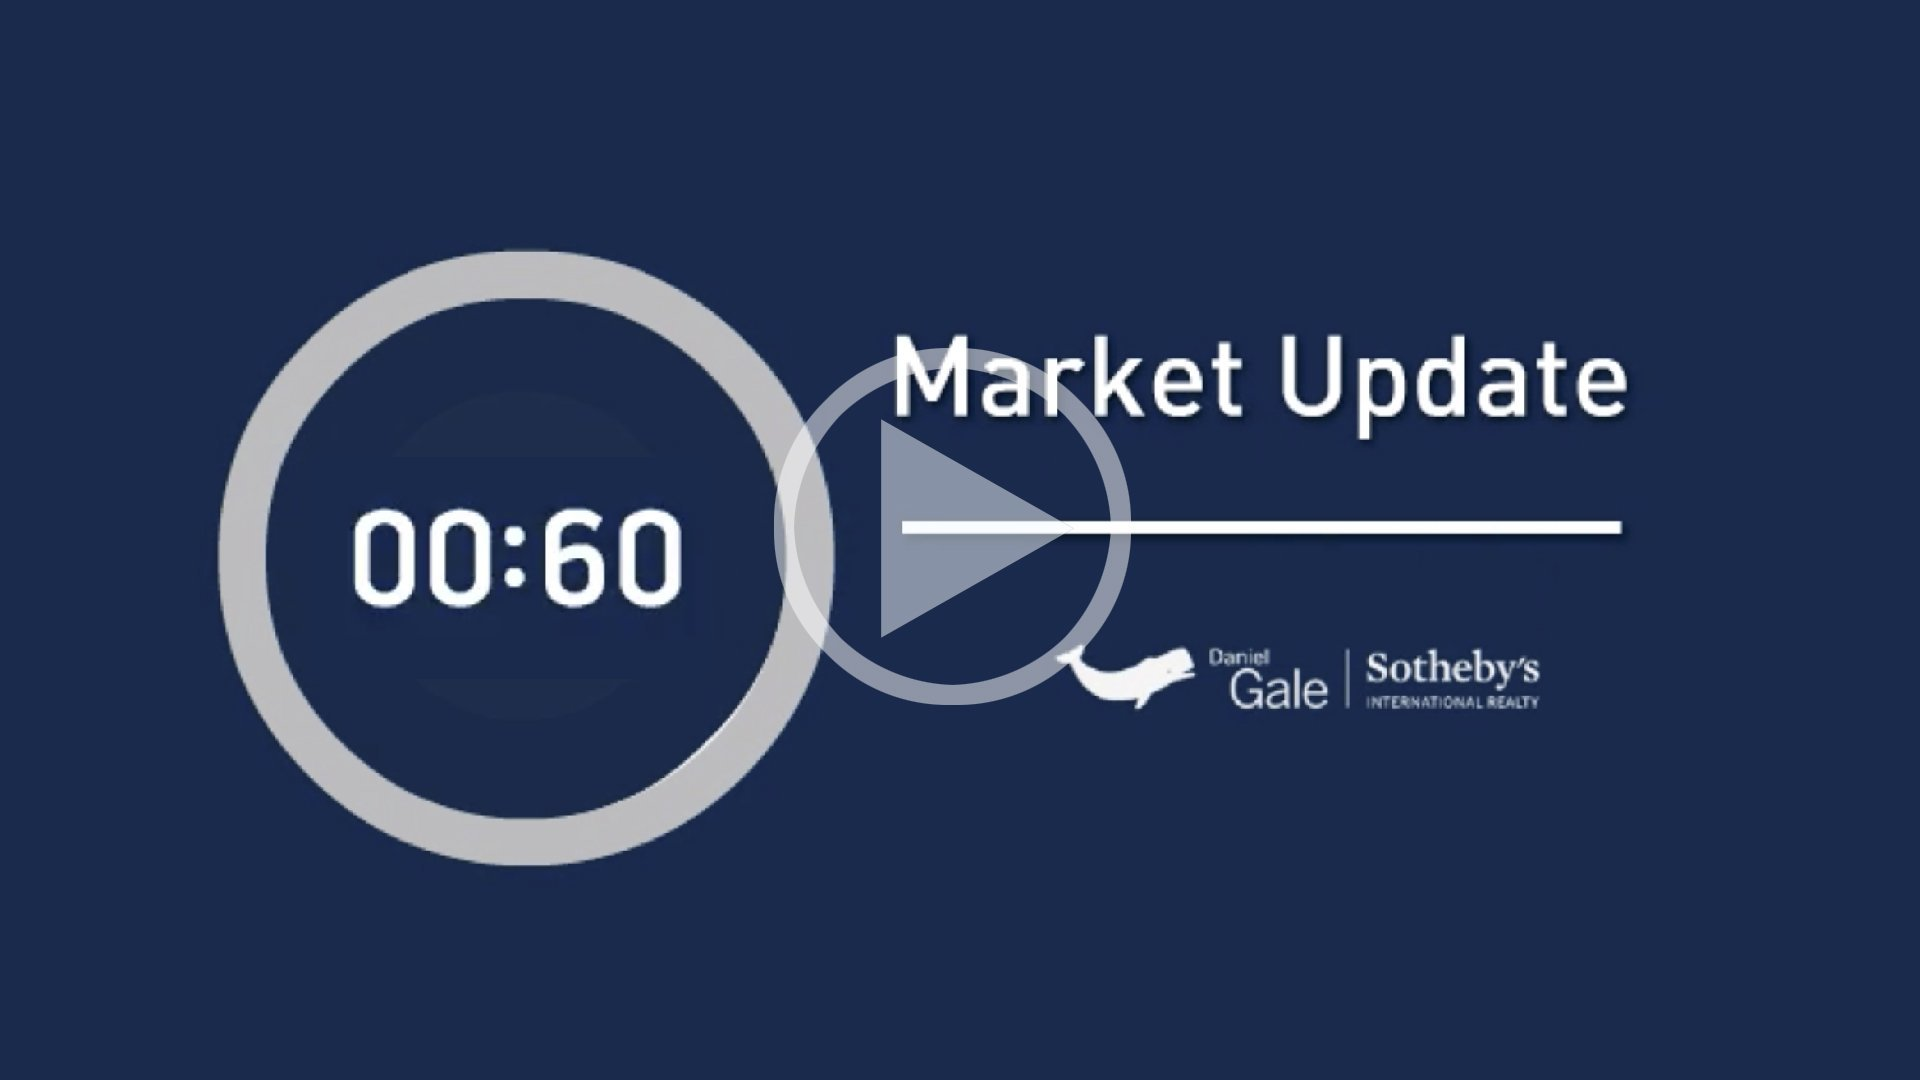 Saint James Market Report